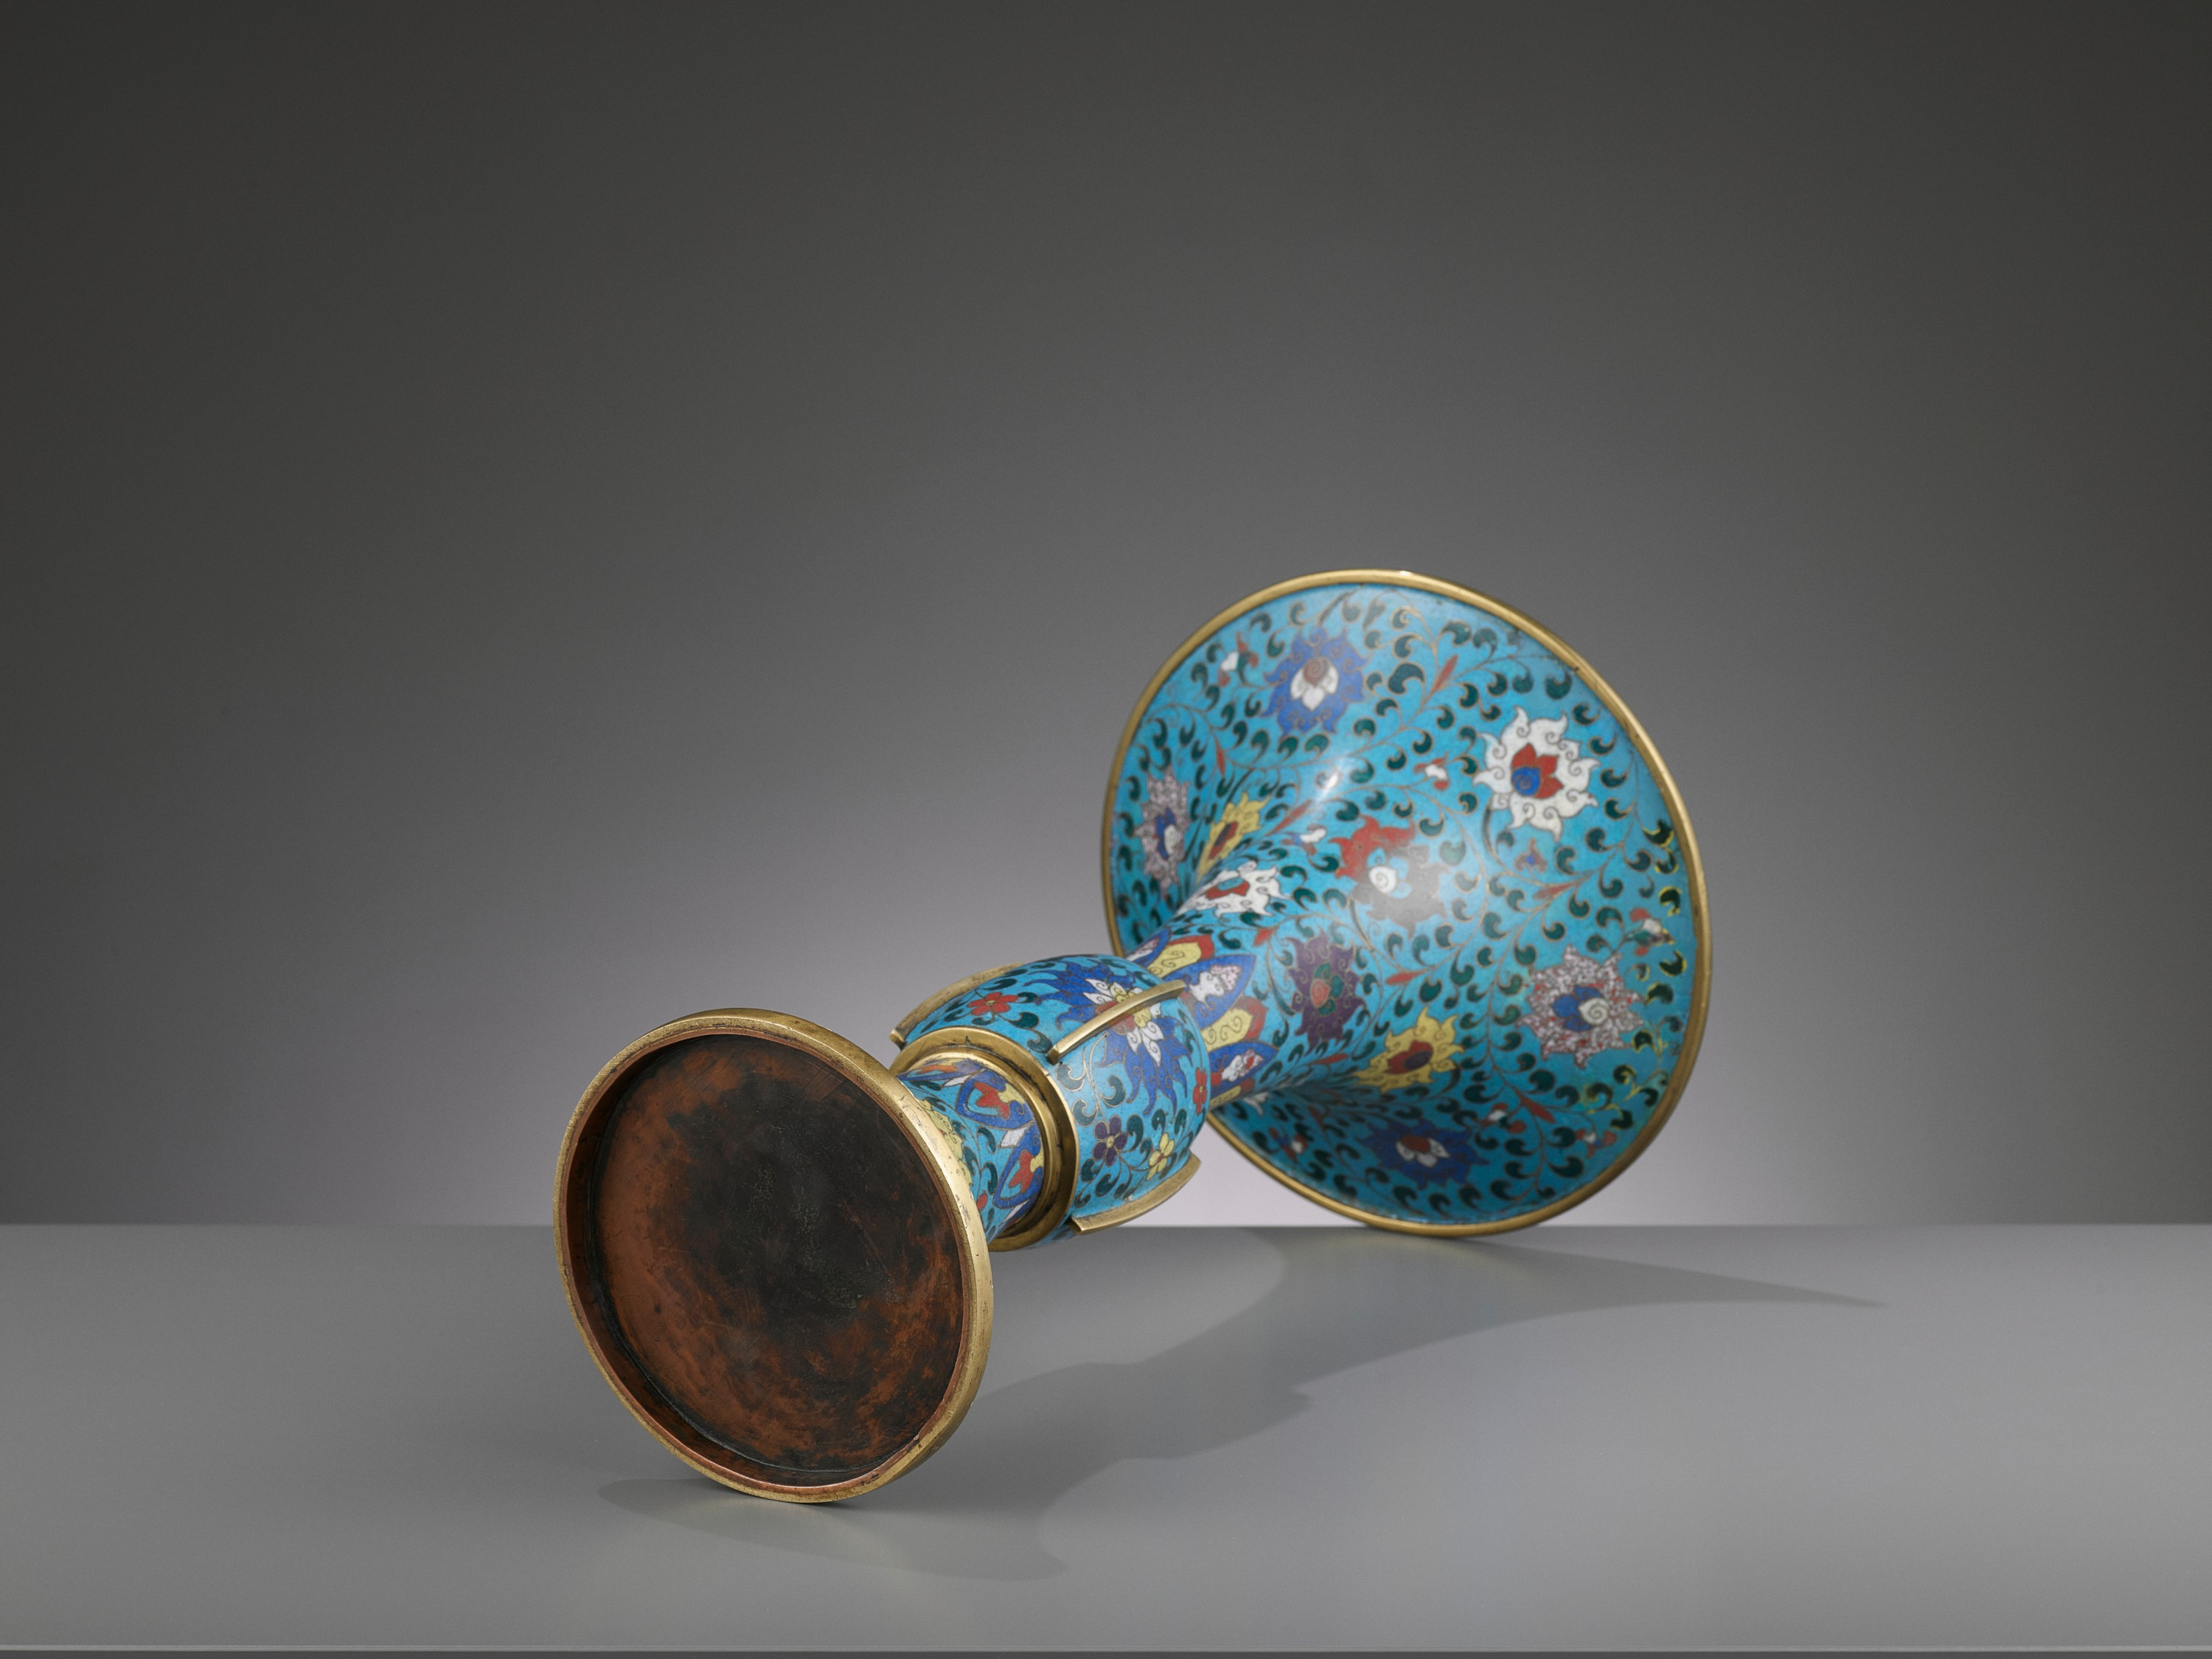 A LARGE CLOISONNE AND GILT-BRONZE GU, QING DYNASTY - Image 6 of 6